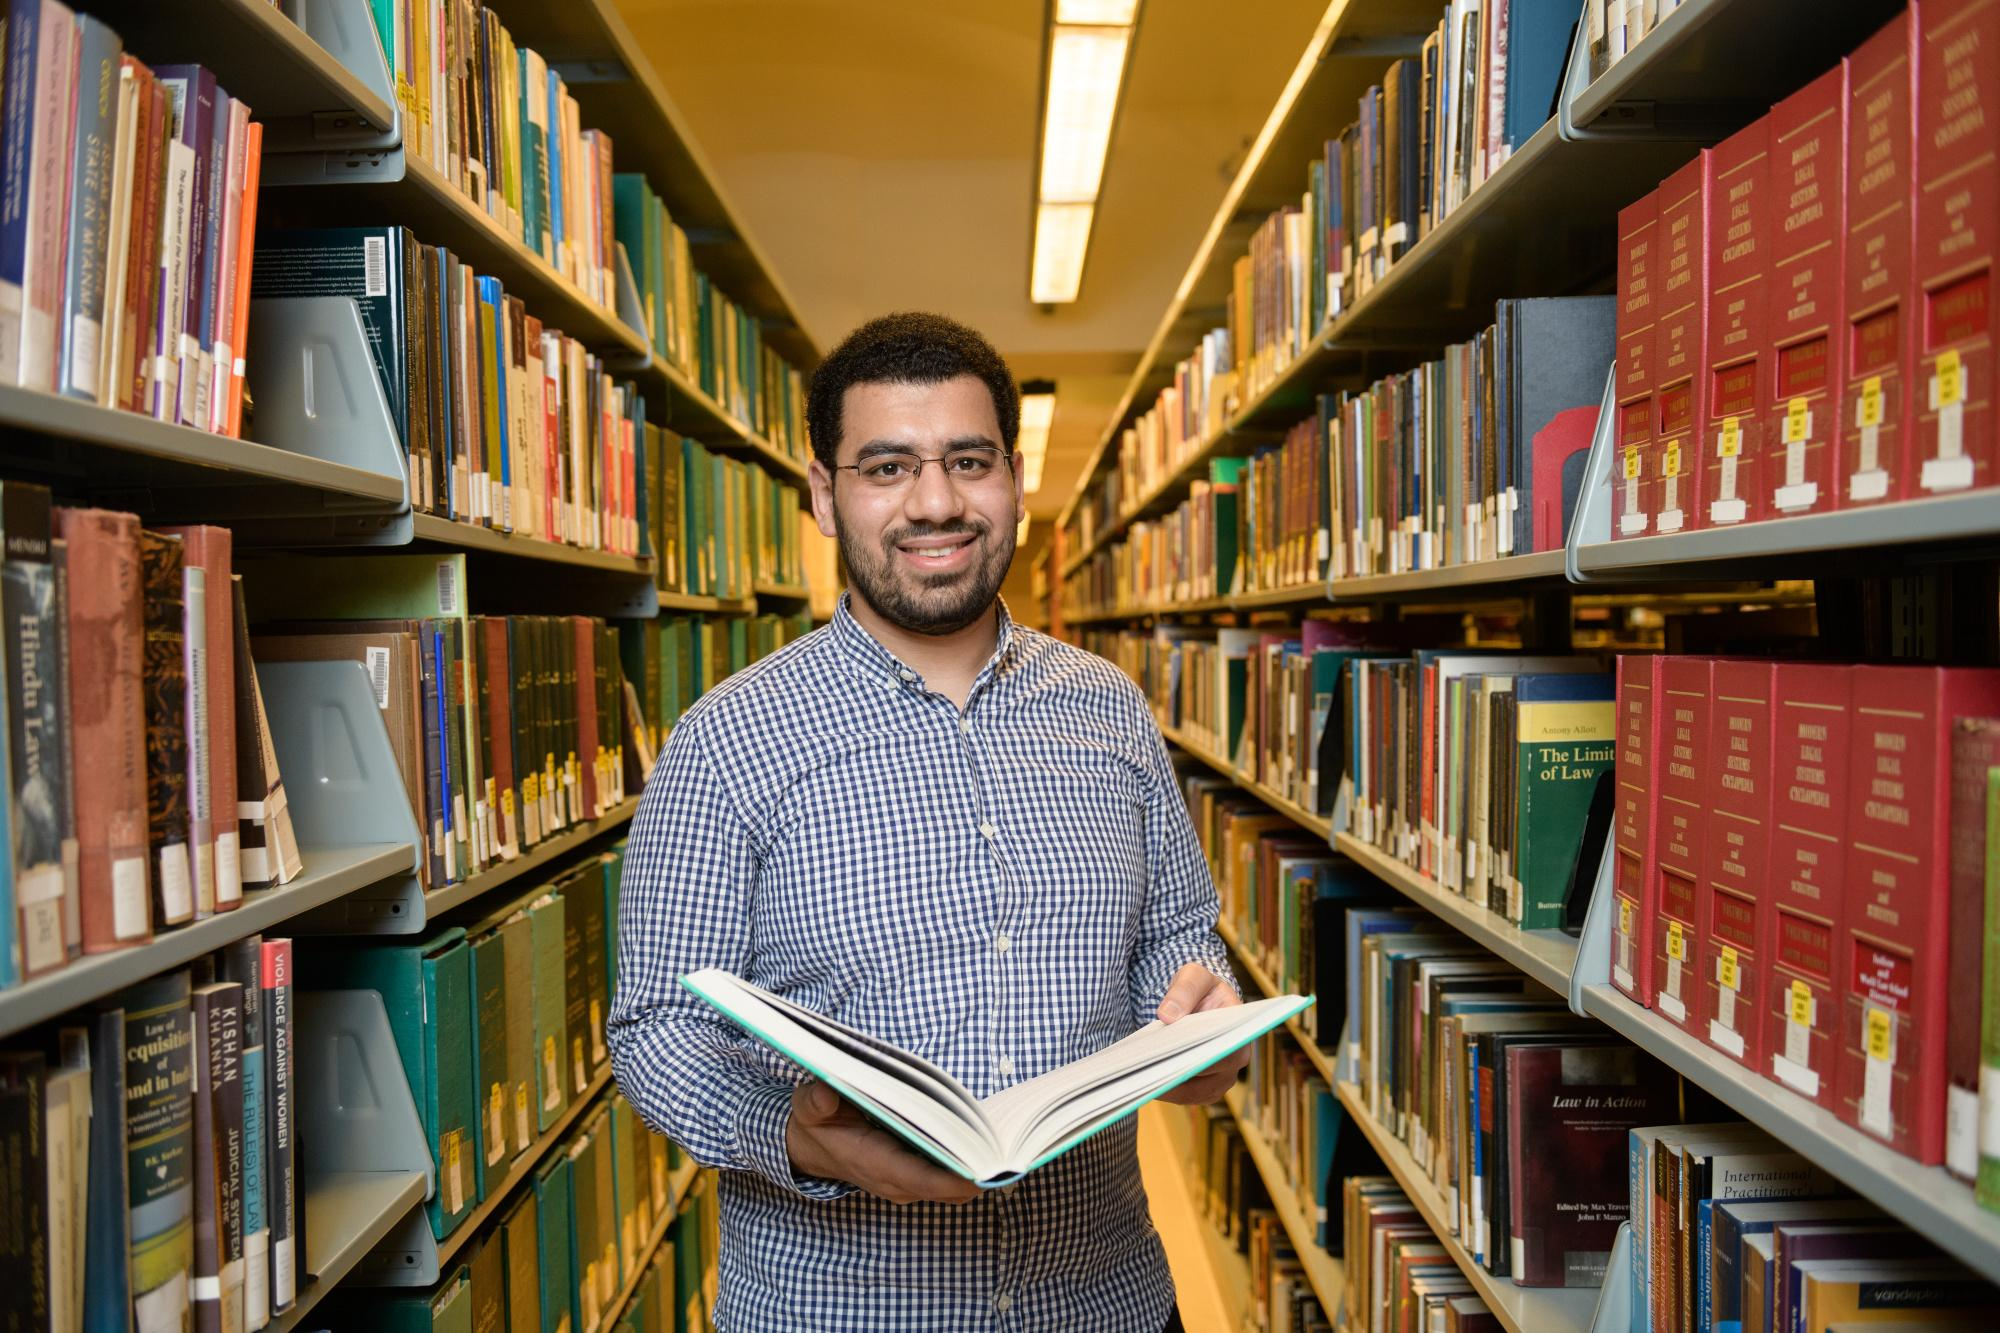 Student checking book shelves in a library